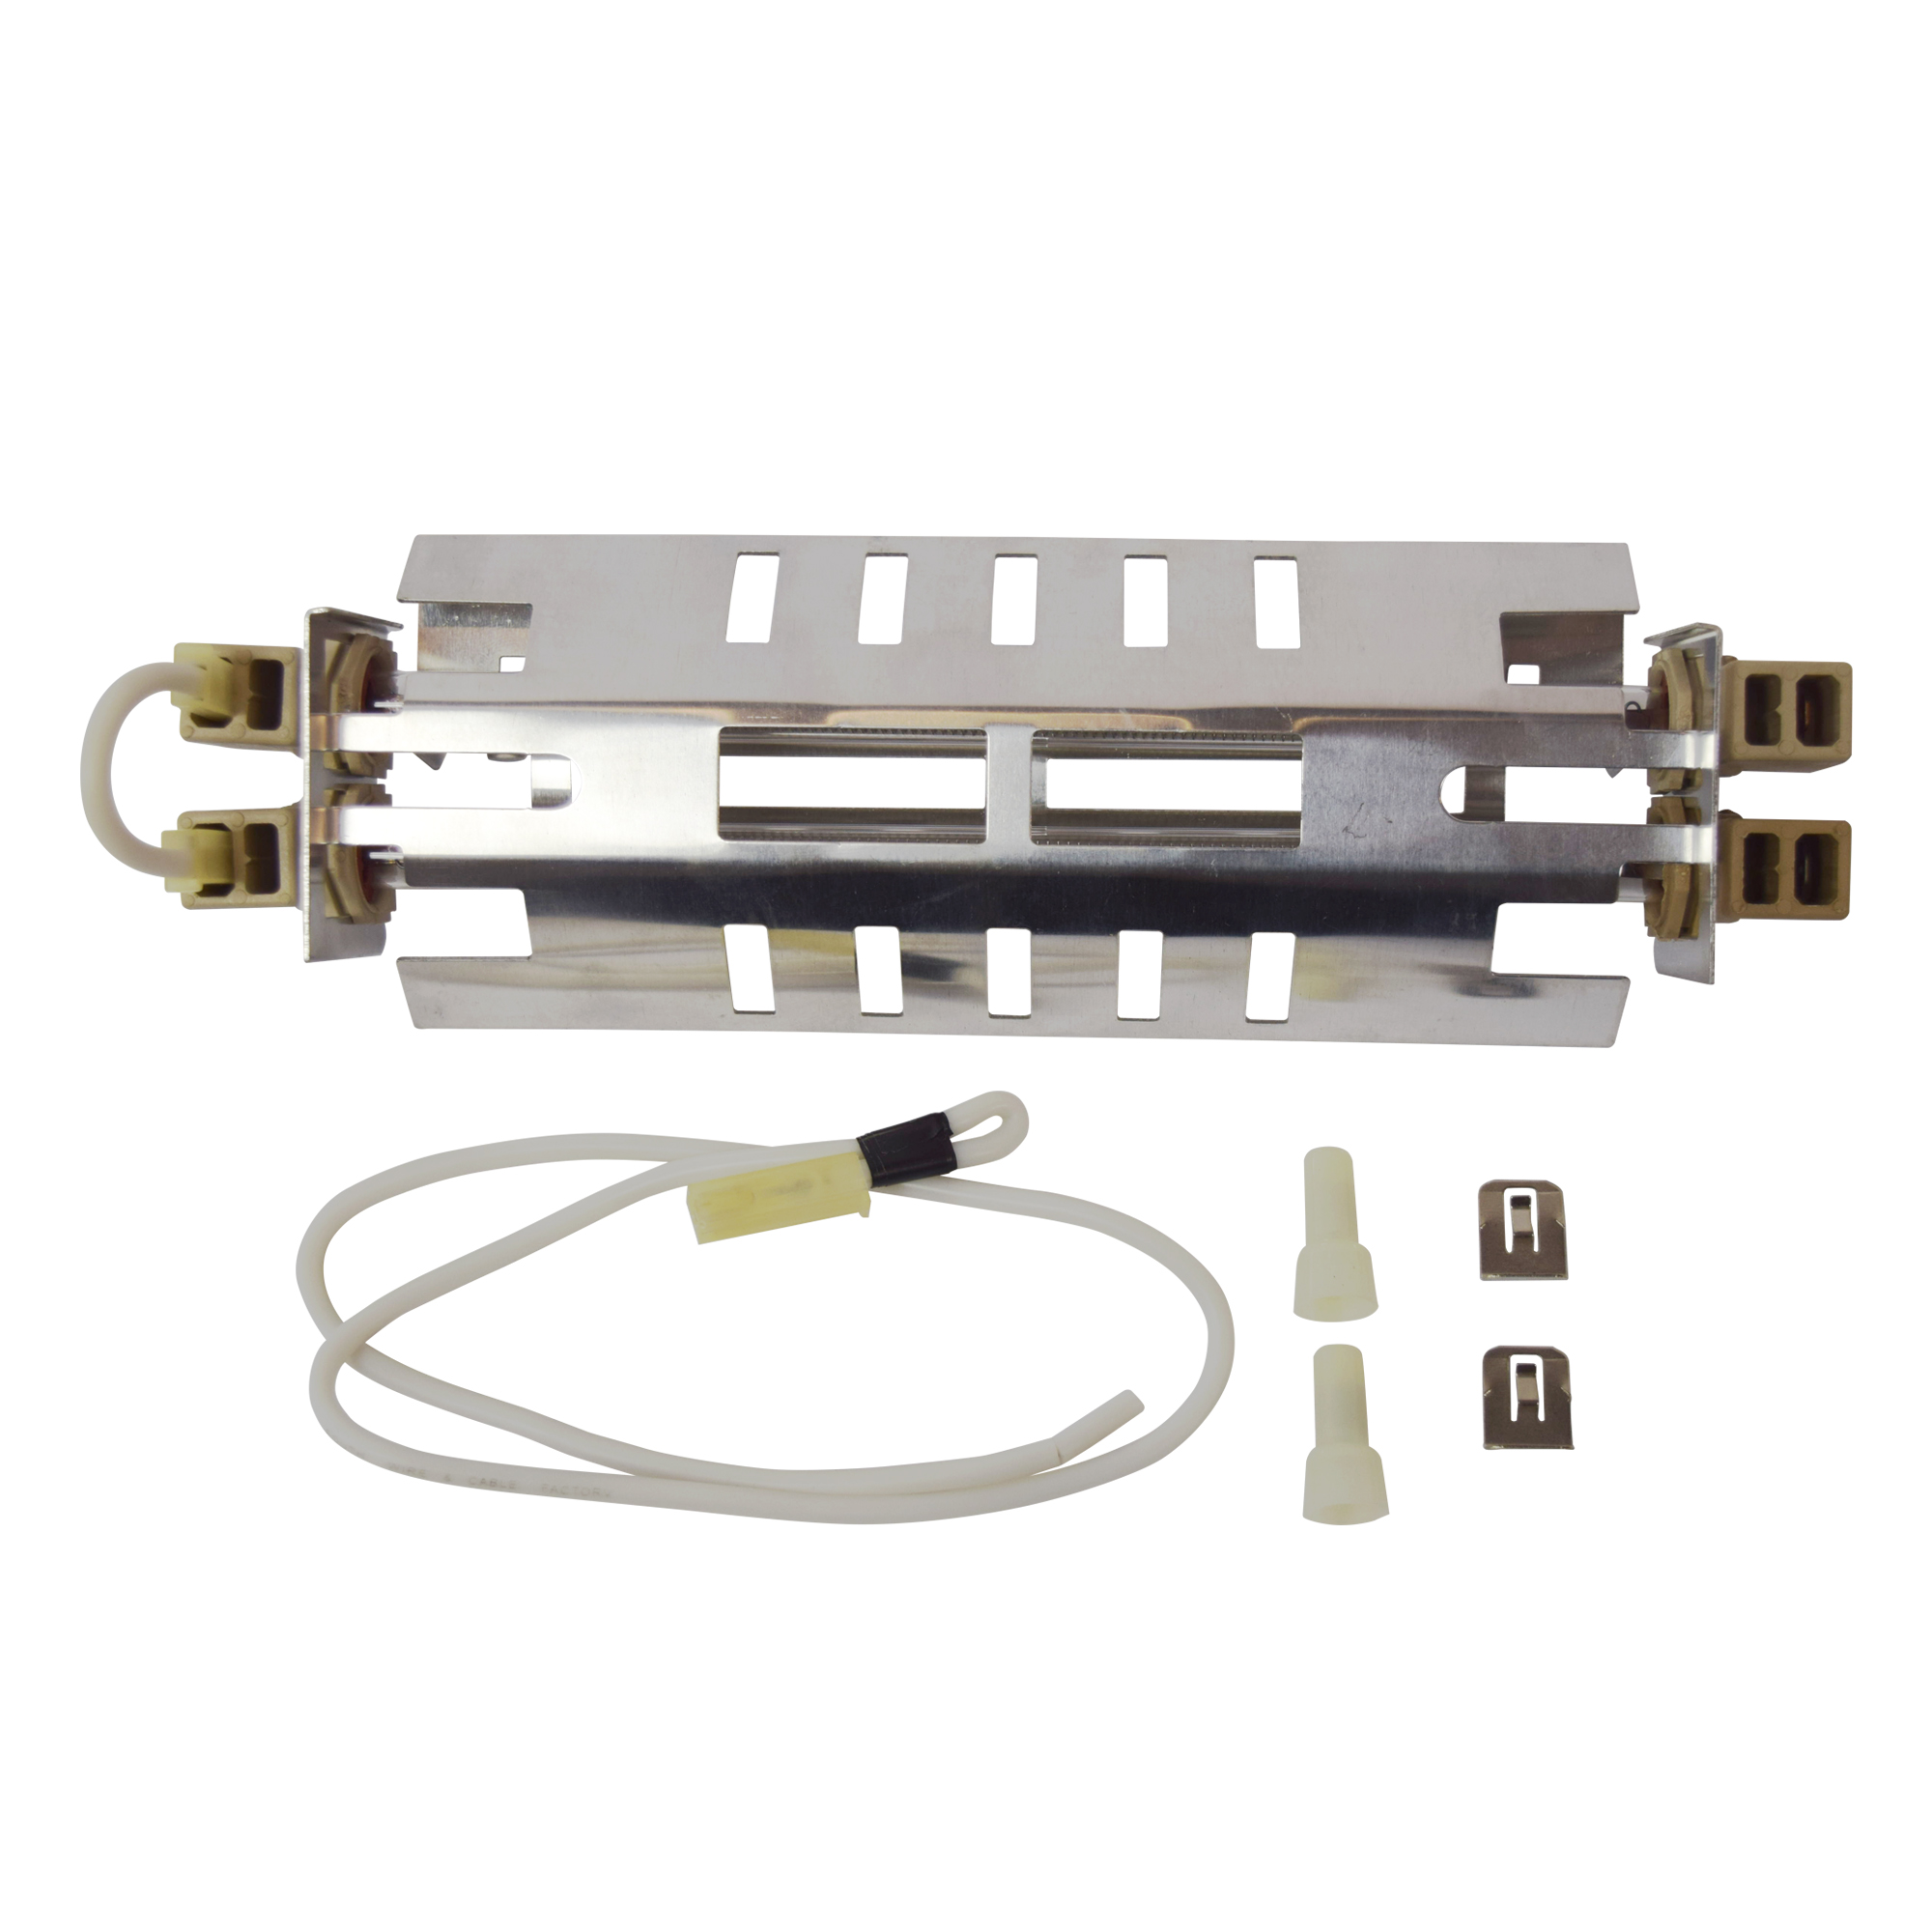 ge refrigerator wiring diagram defrost heater 2 wire alternator wr51x10101 and bracket assembly for